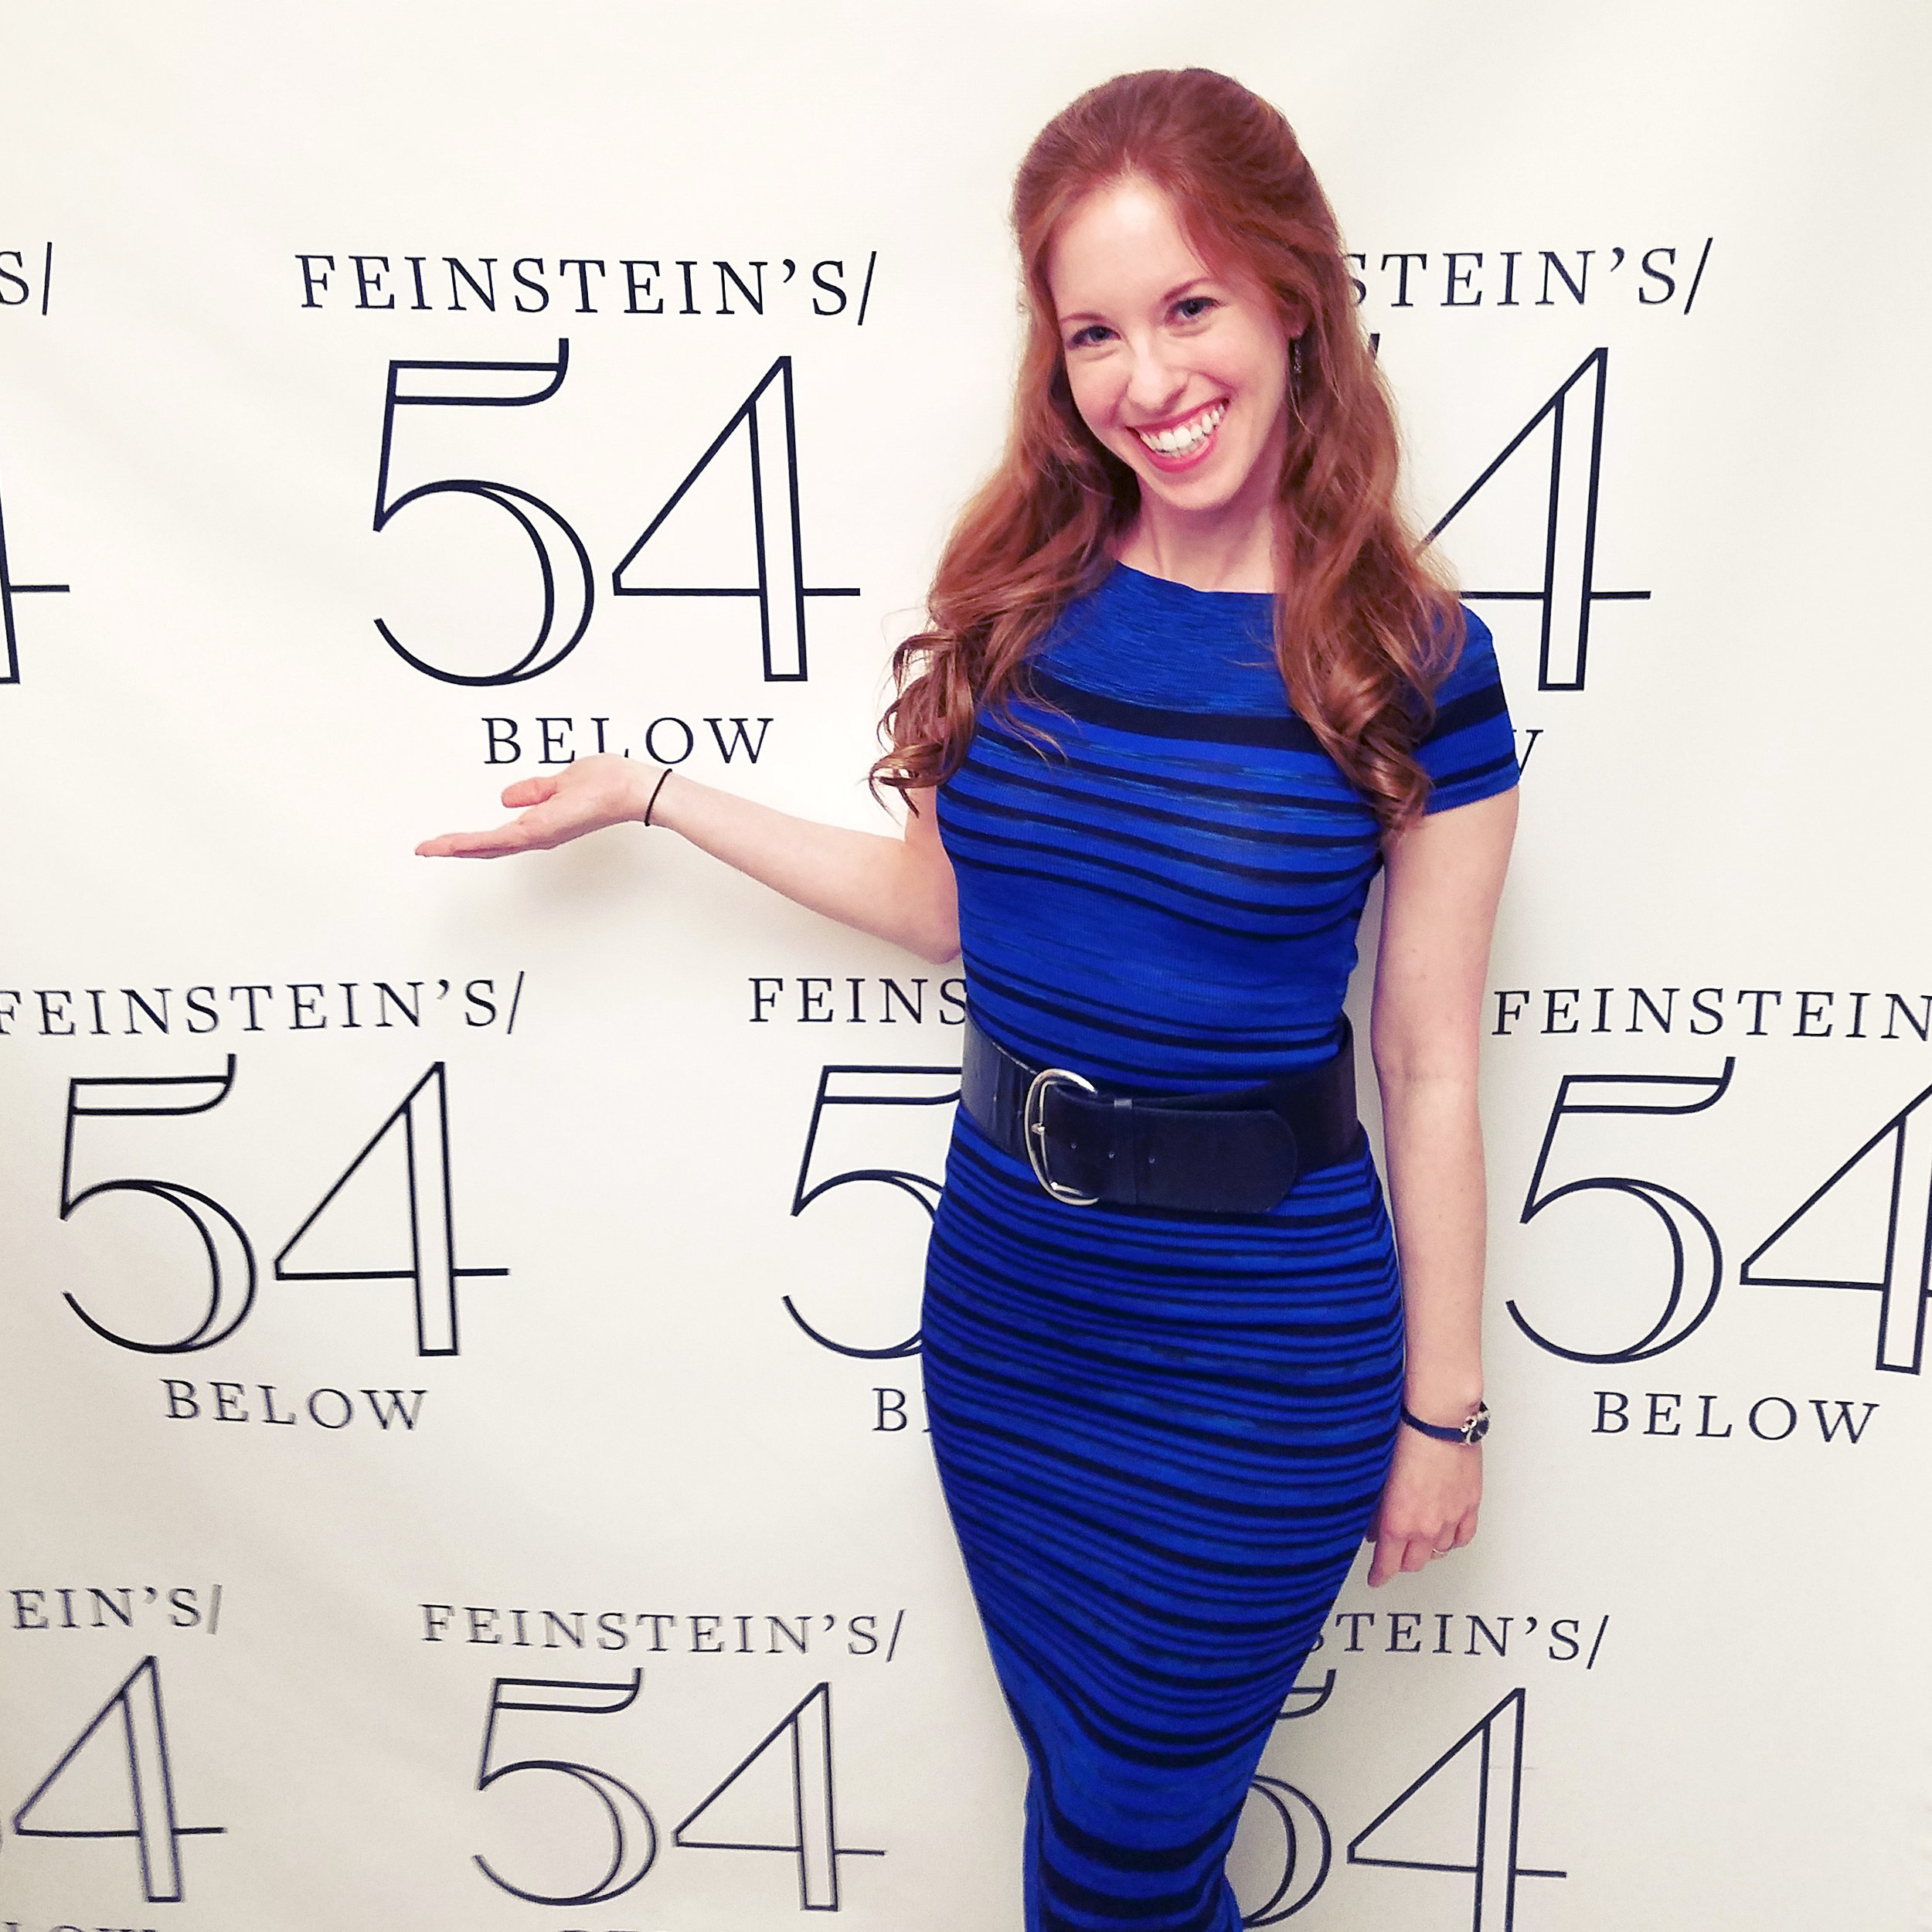 Elisabeth Ness at 54 Below